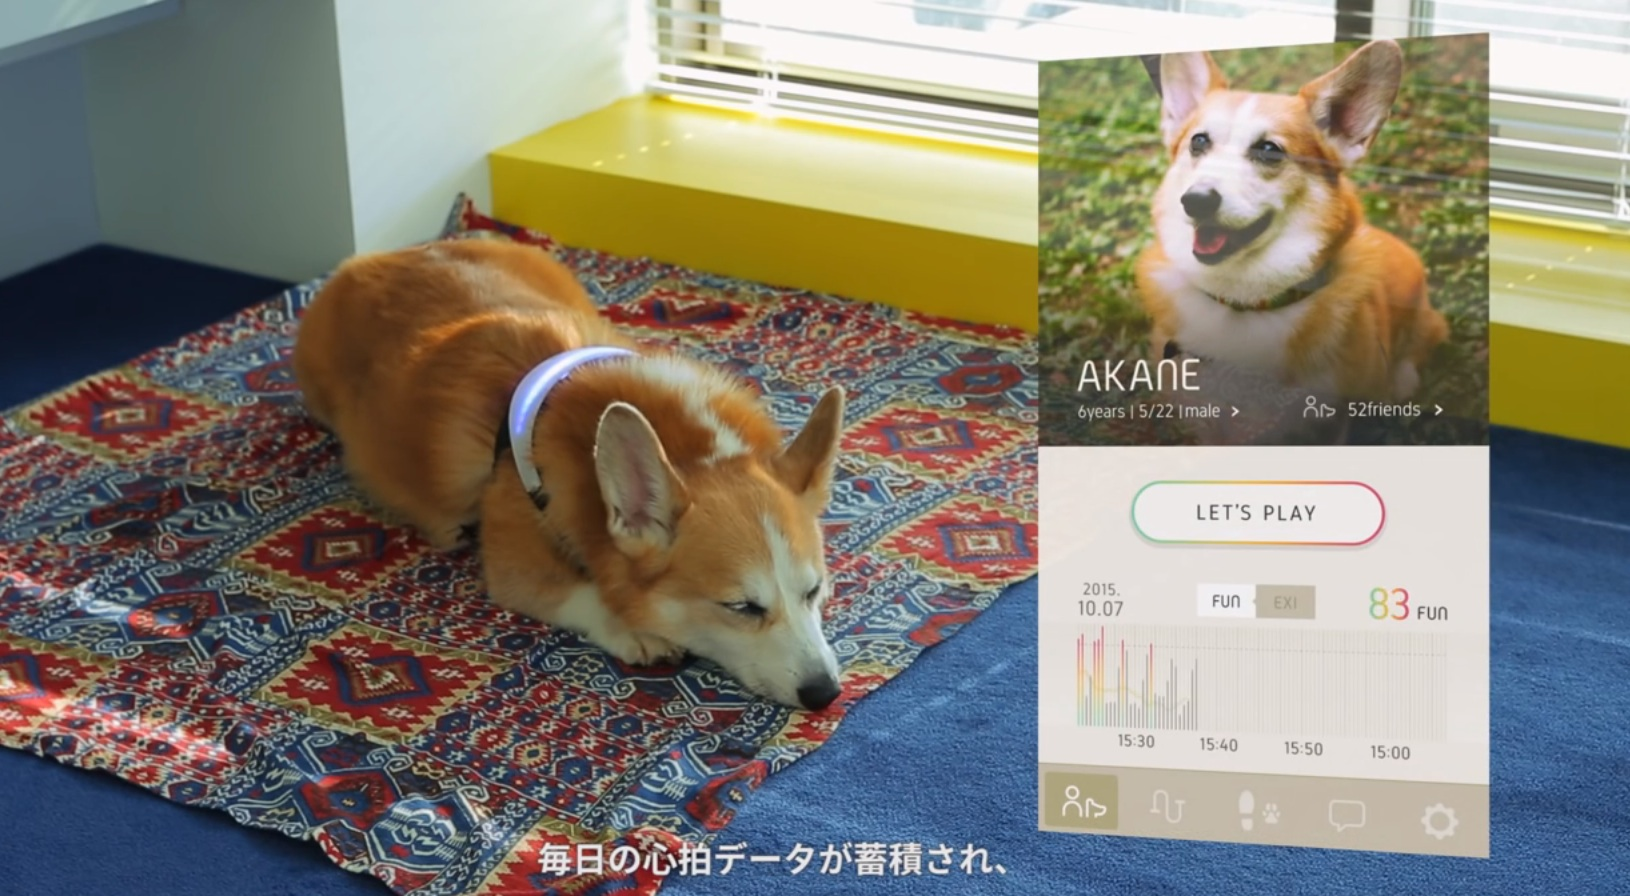 This collar will tell you exactly what your dog is thinking